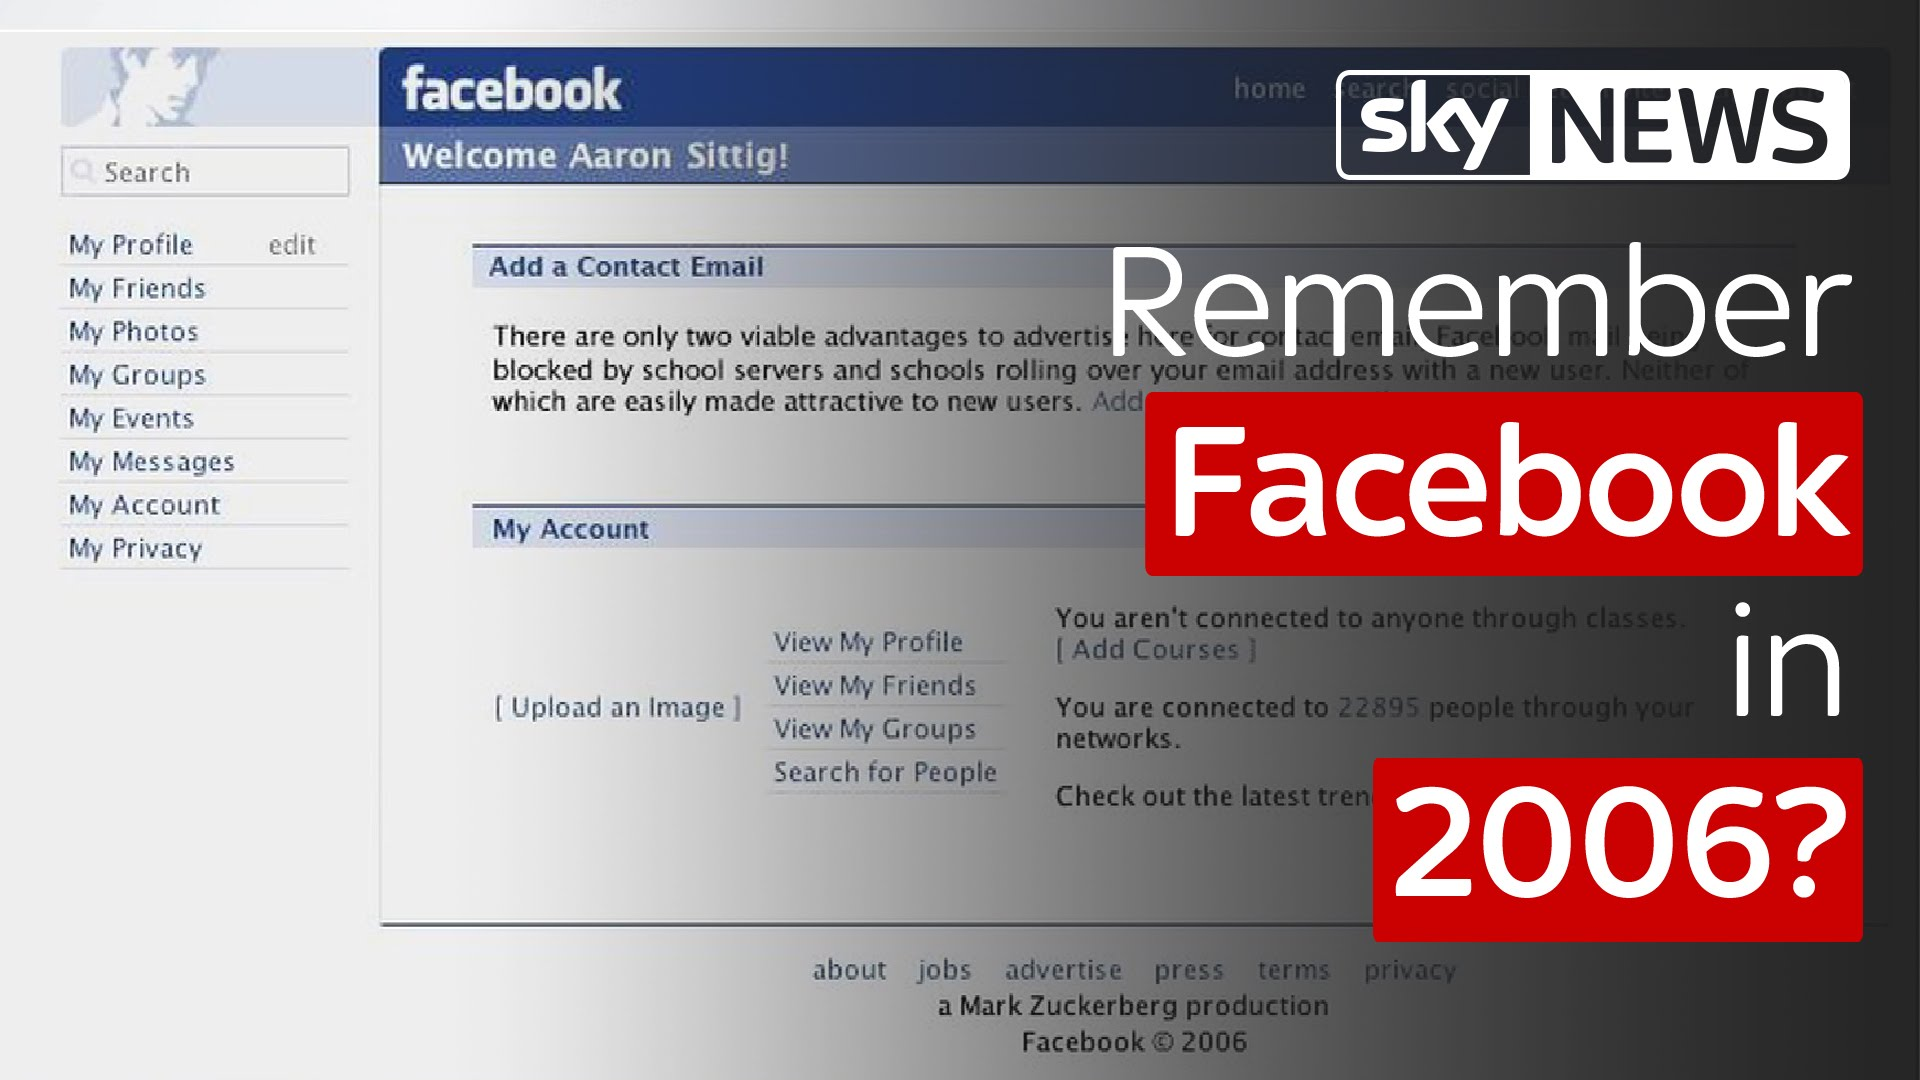 Remember Facebook in 2006? Interview with Facebook's Chris Cox 2